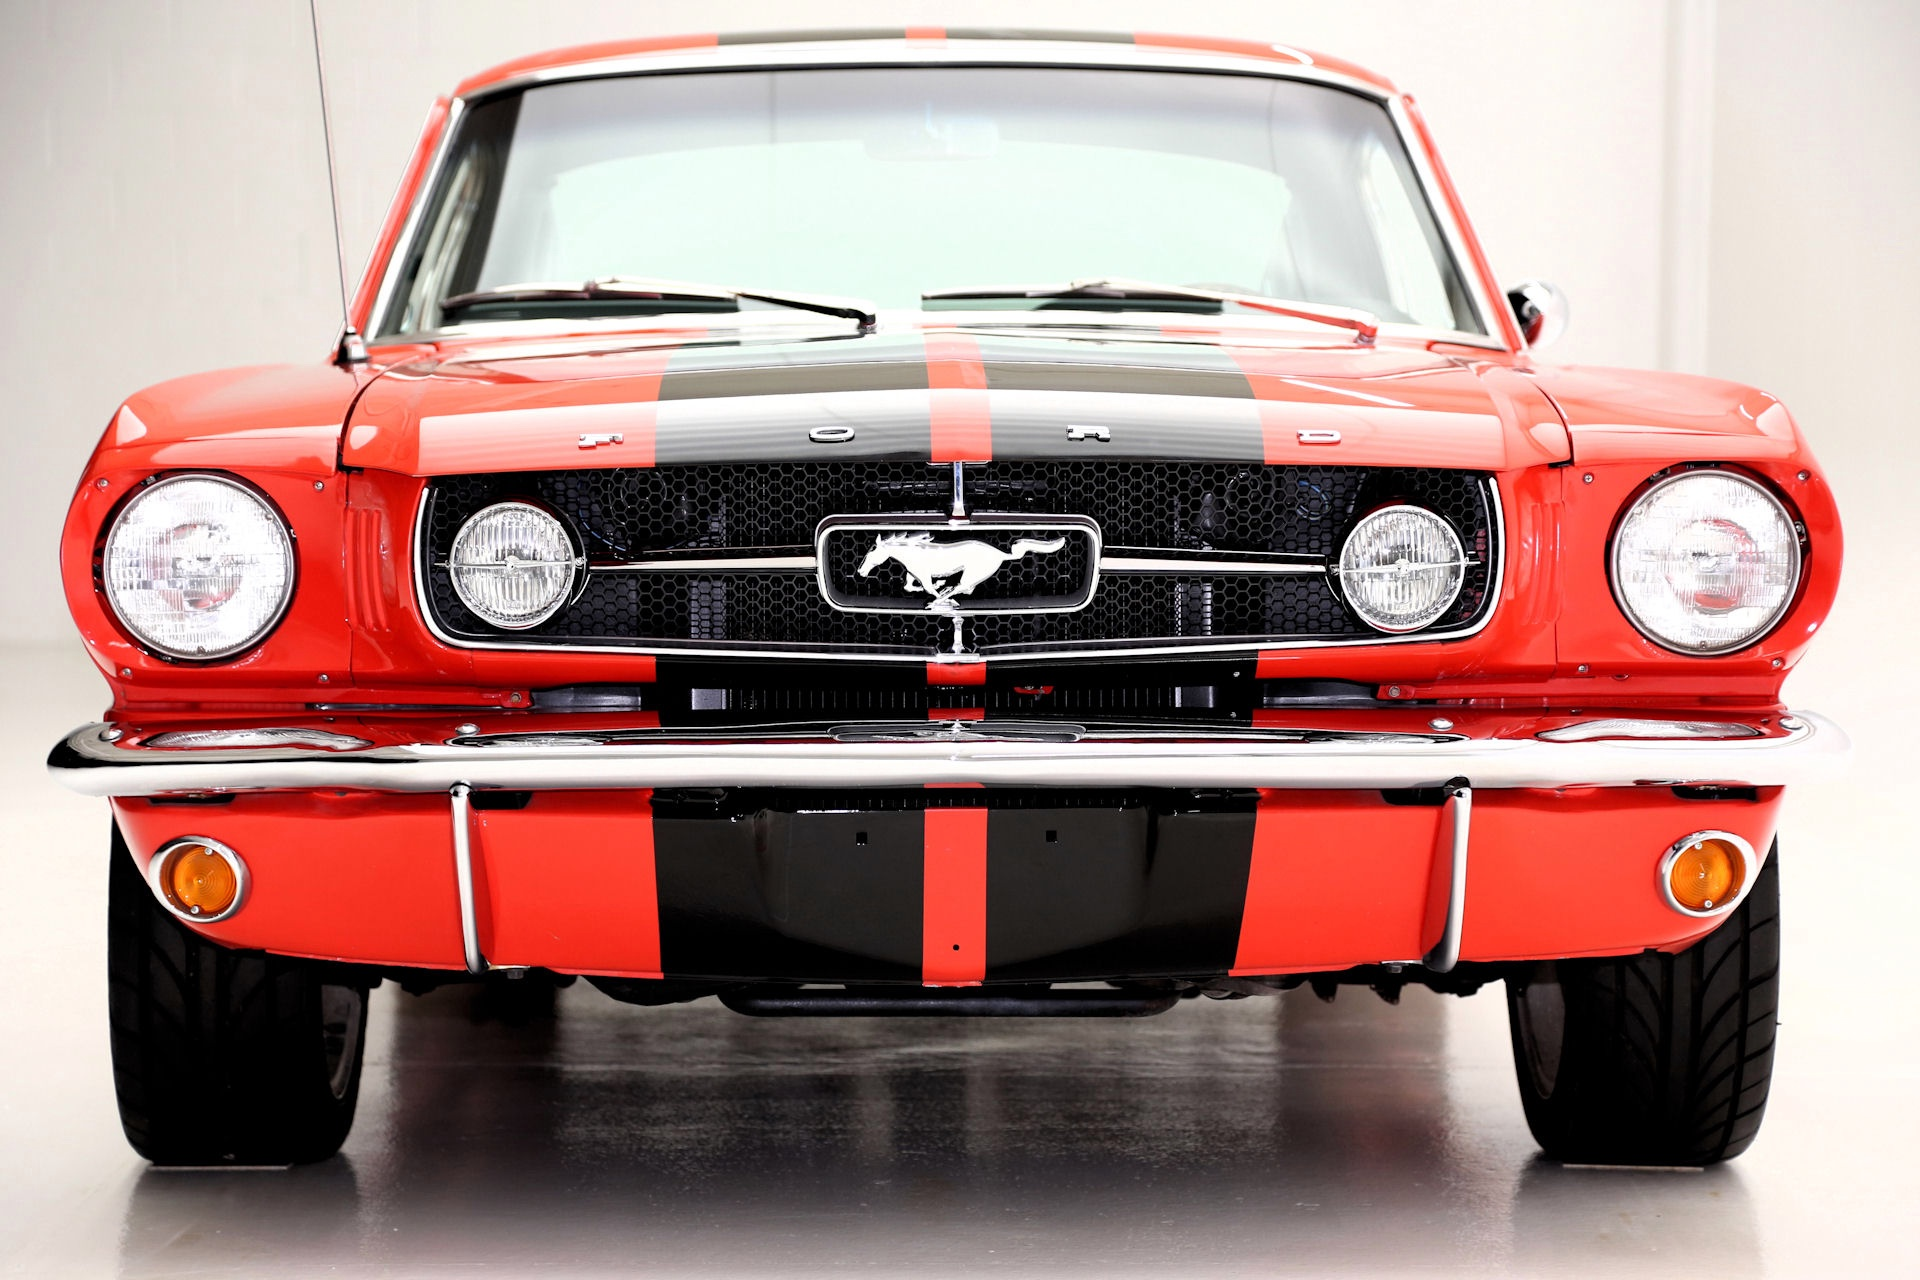 1965 Ford Mustang Fastback poppy red, blk interior - American Dream ...